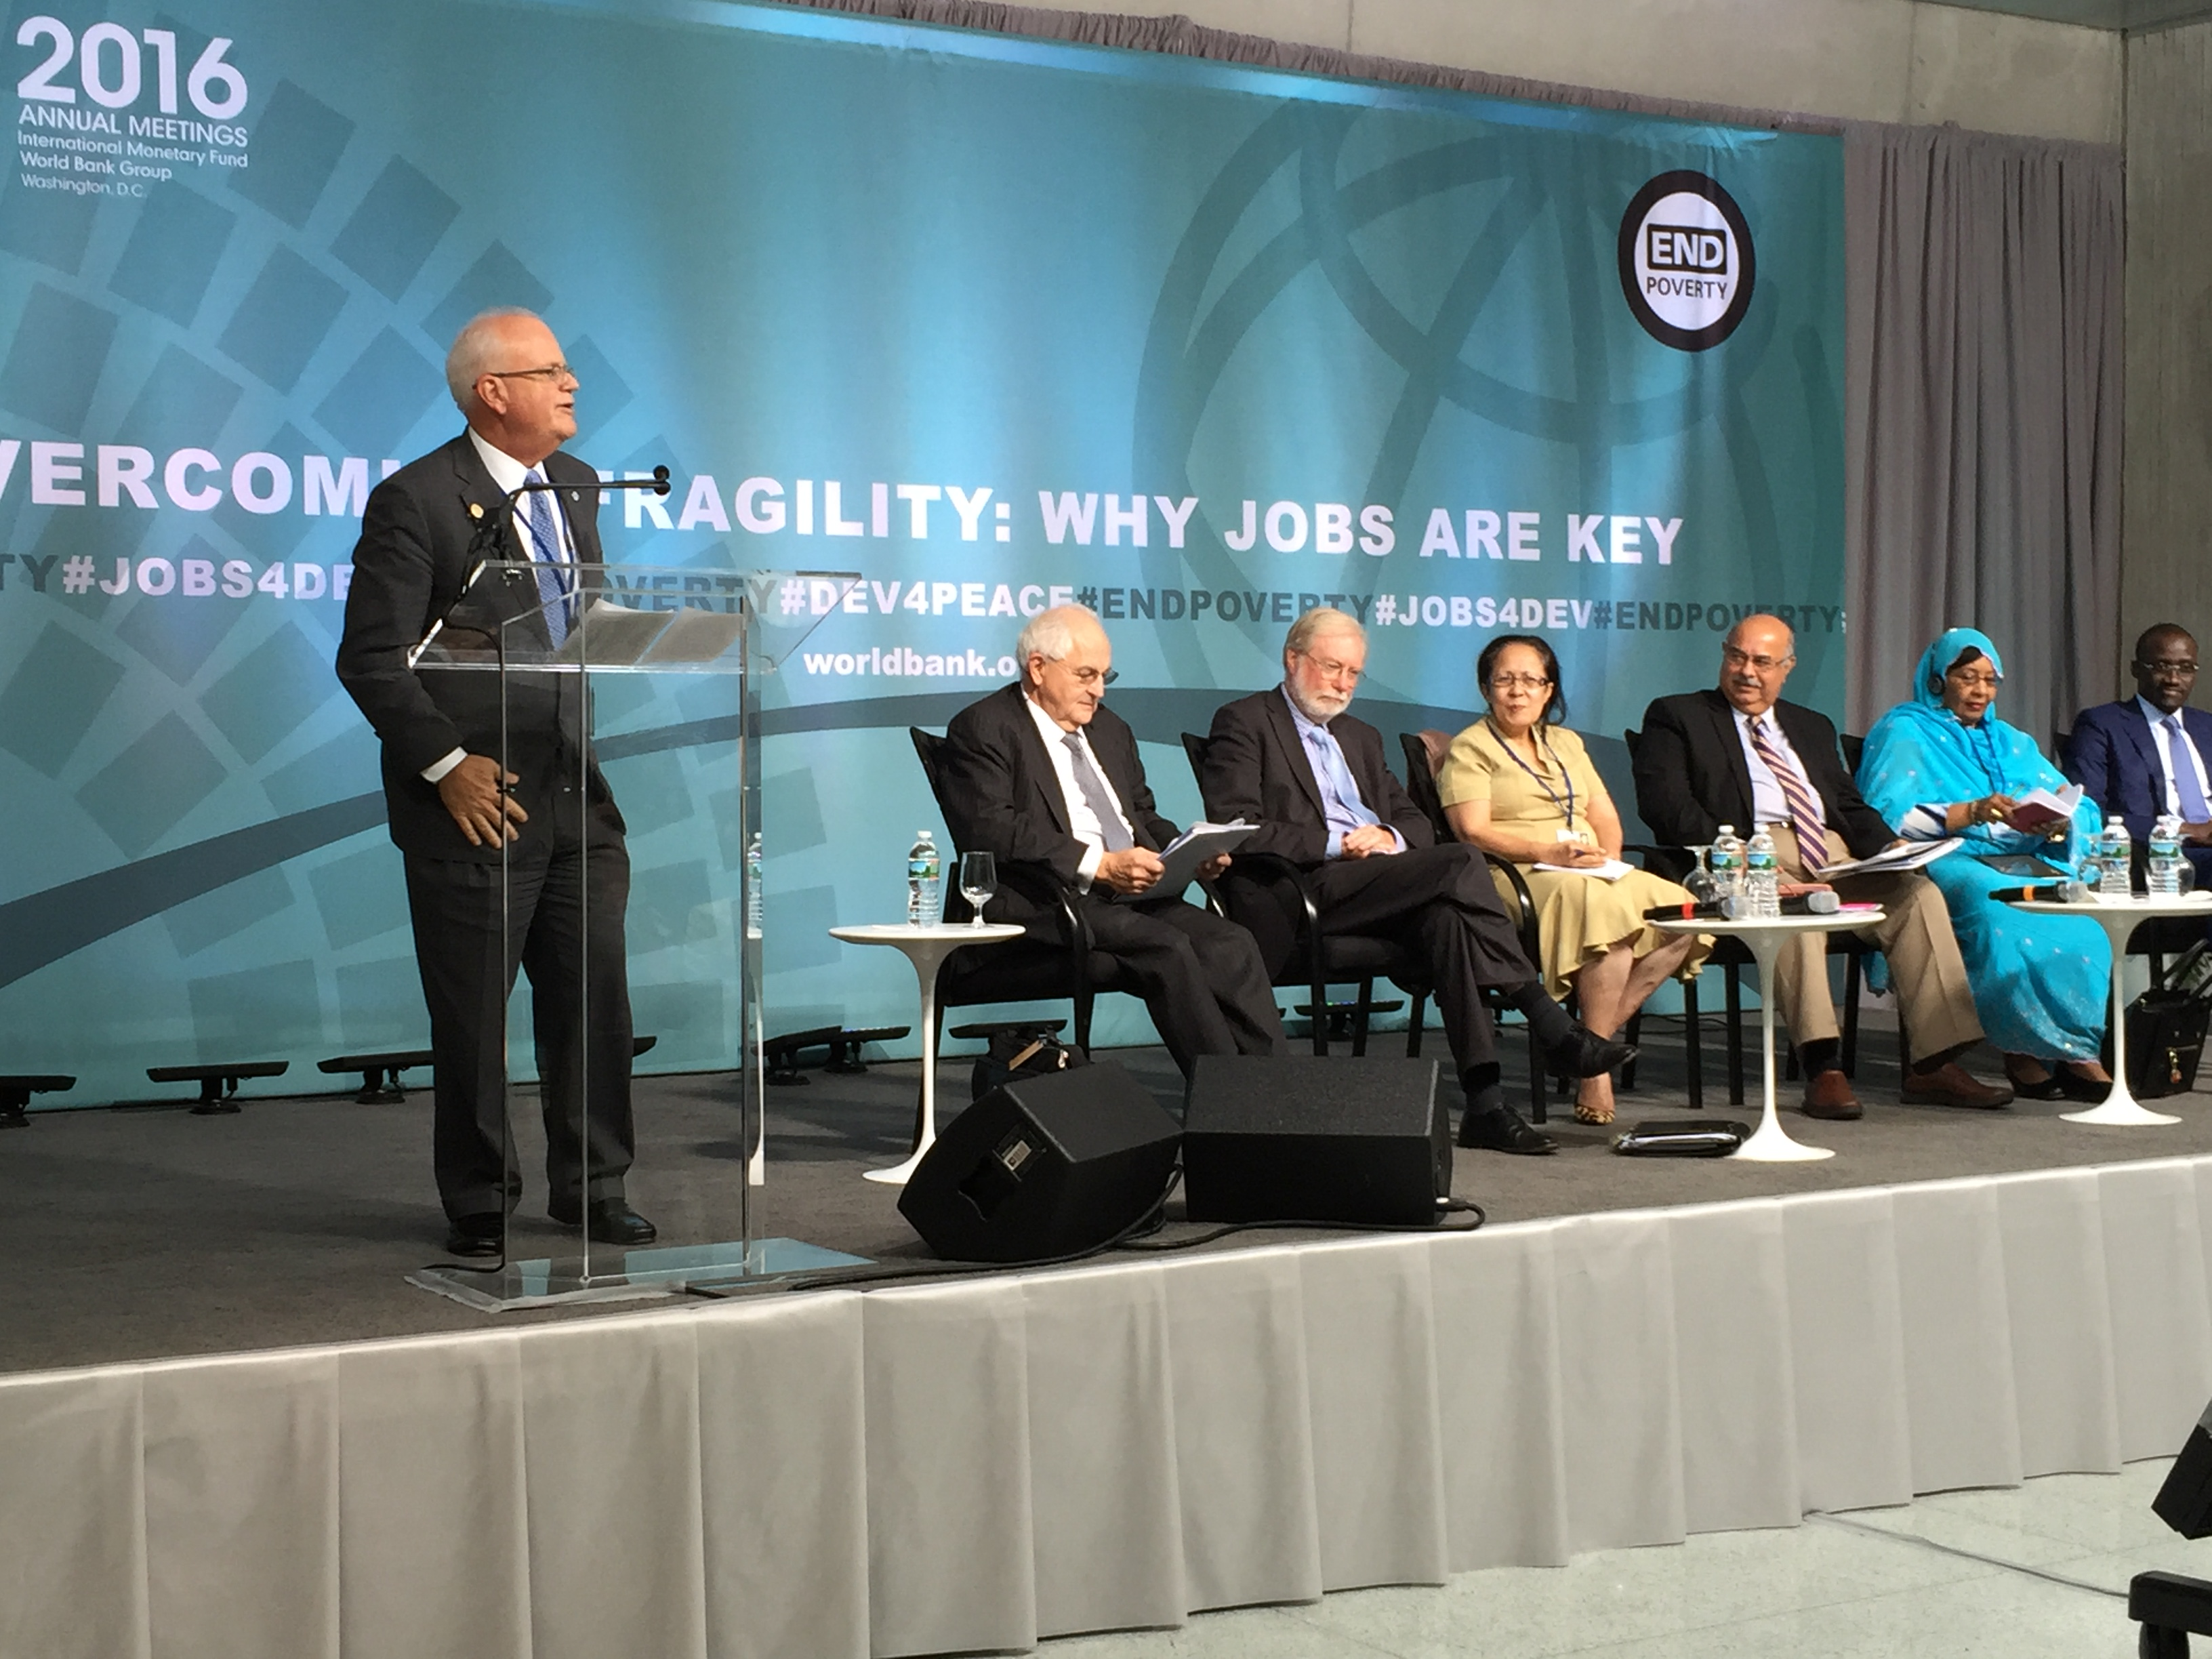 Why Jobs are Key, World Bank Live.